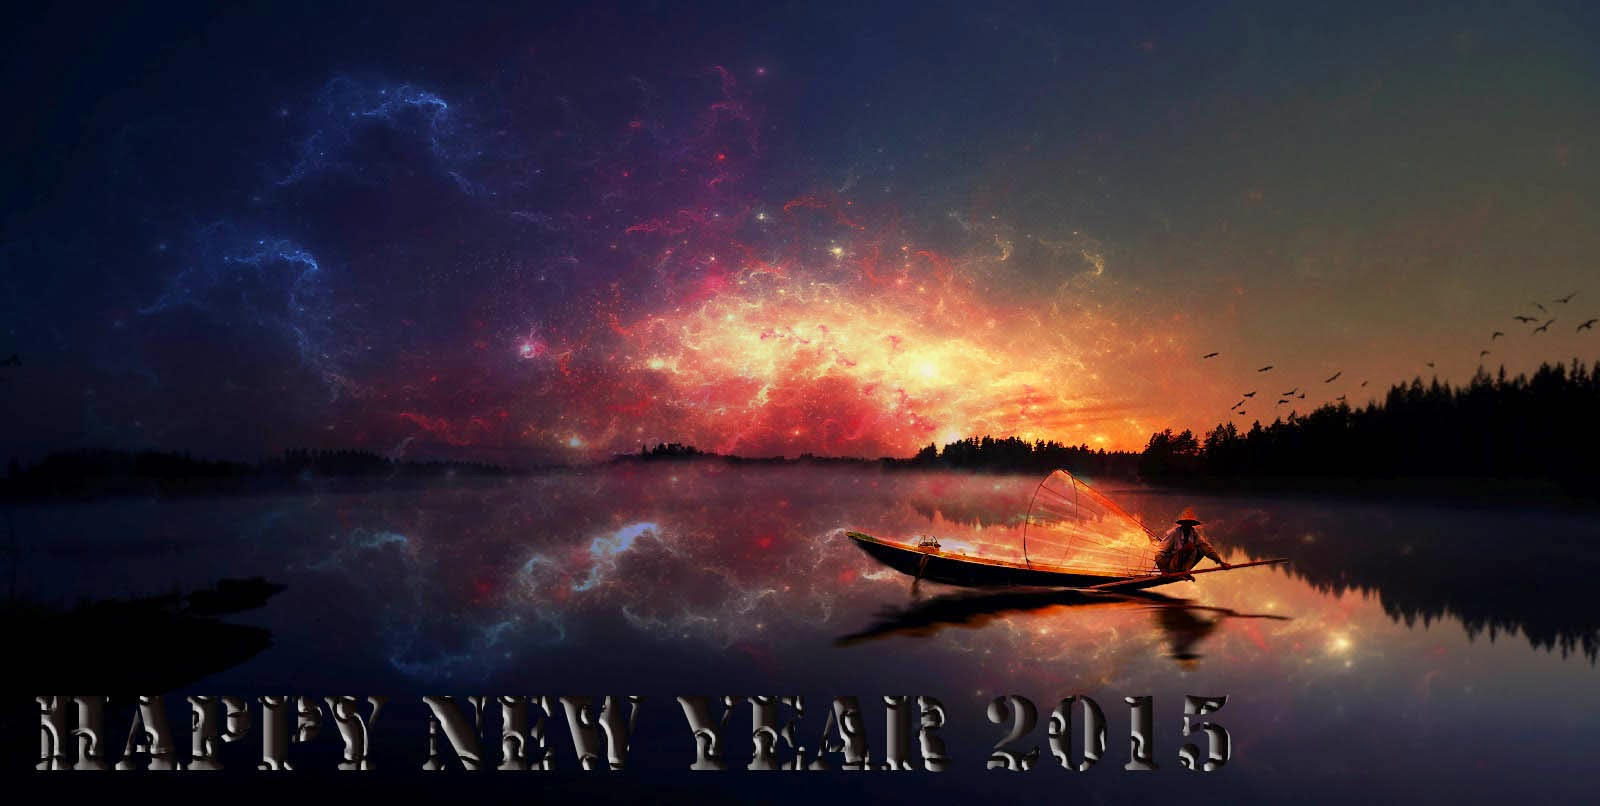 Latest Beautiful Happy New Year Images 2015 – Lovely Pictures